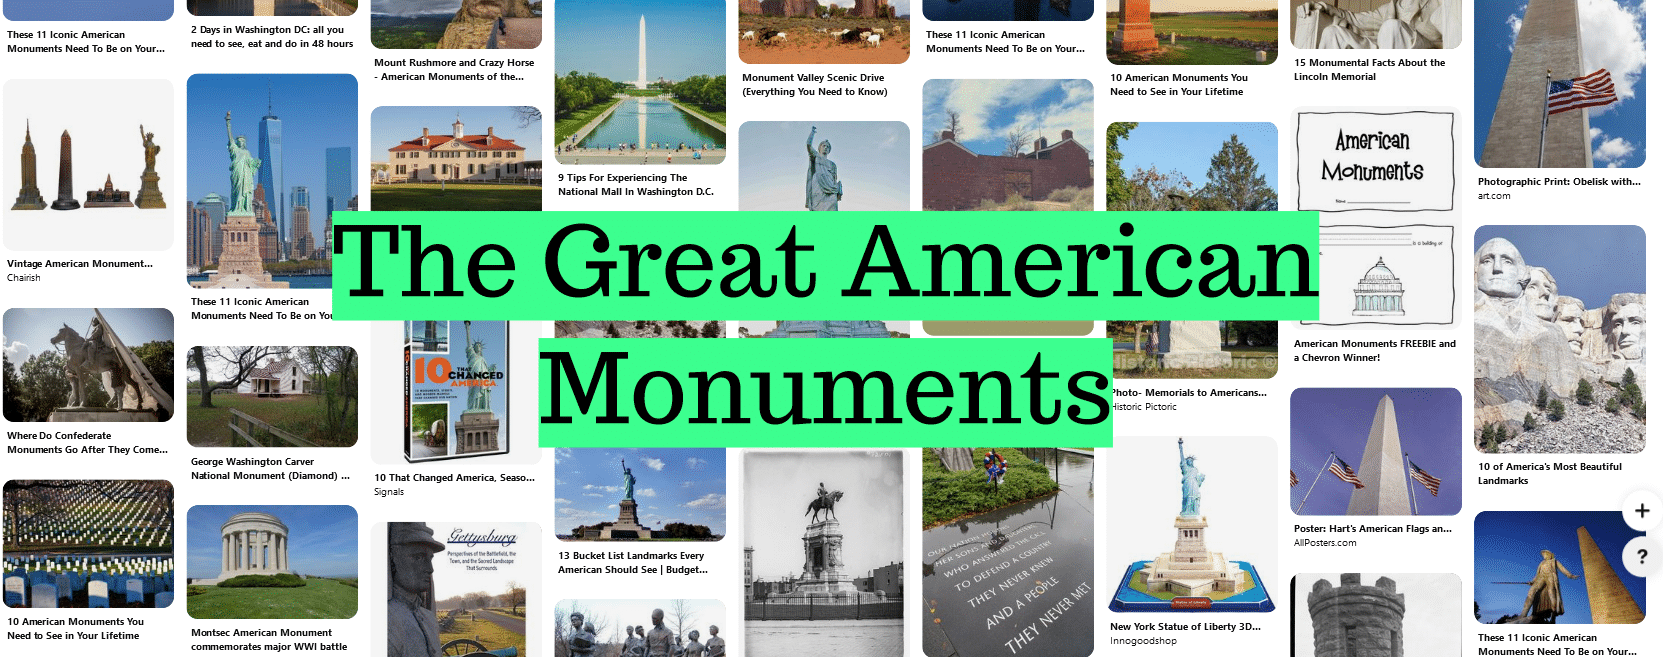 The Great American Monuments